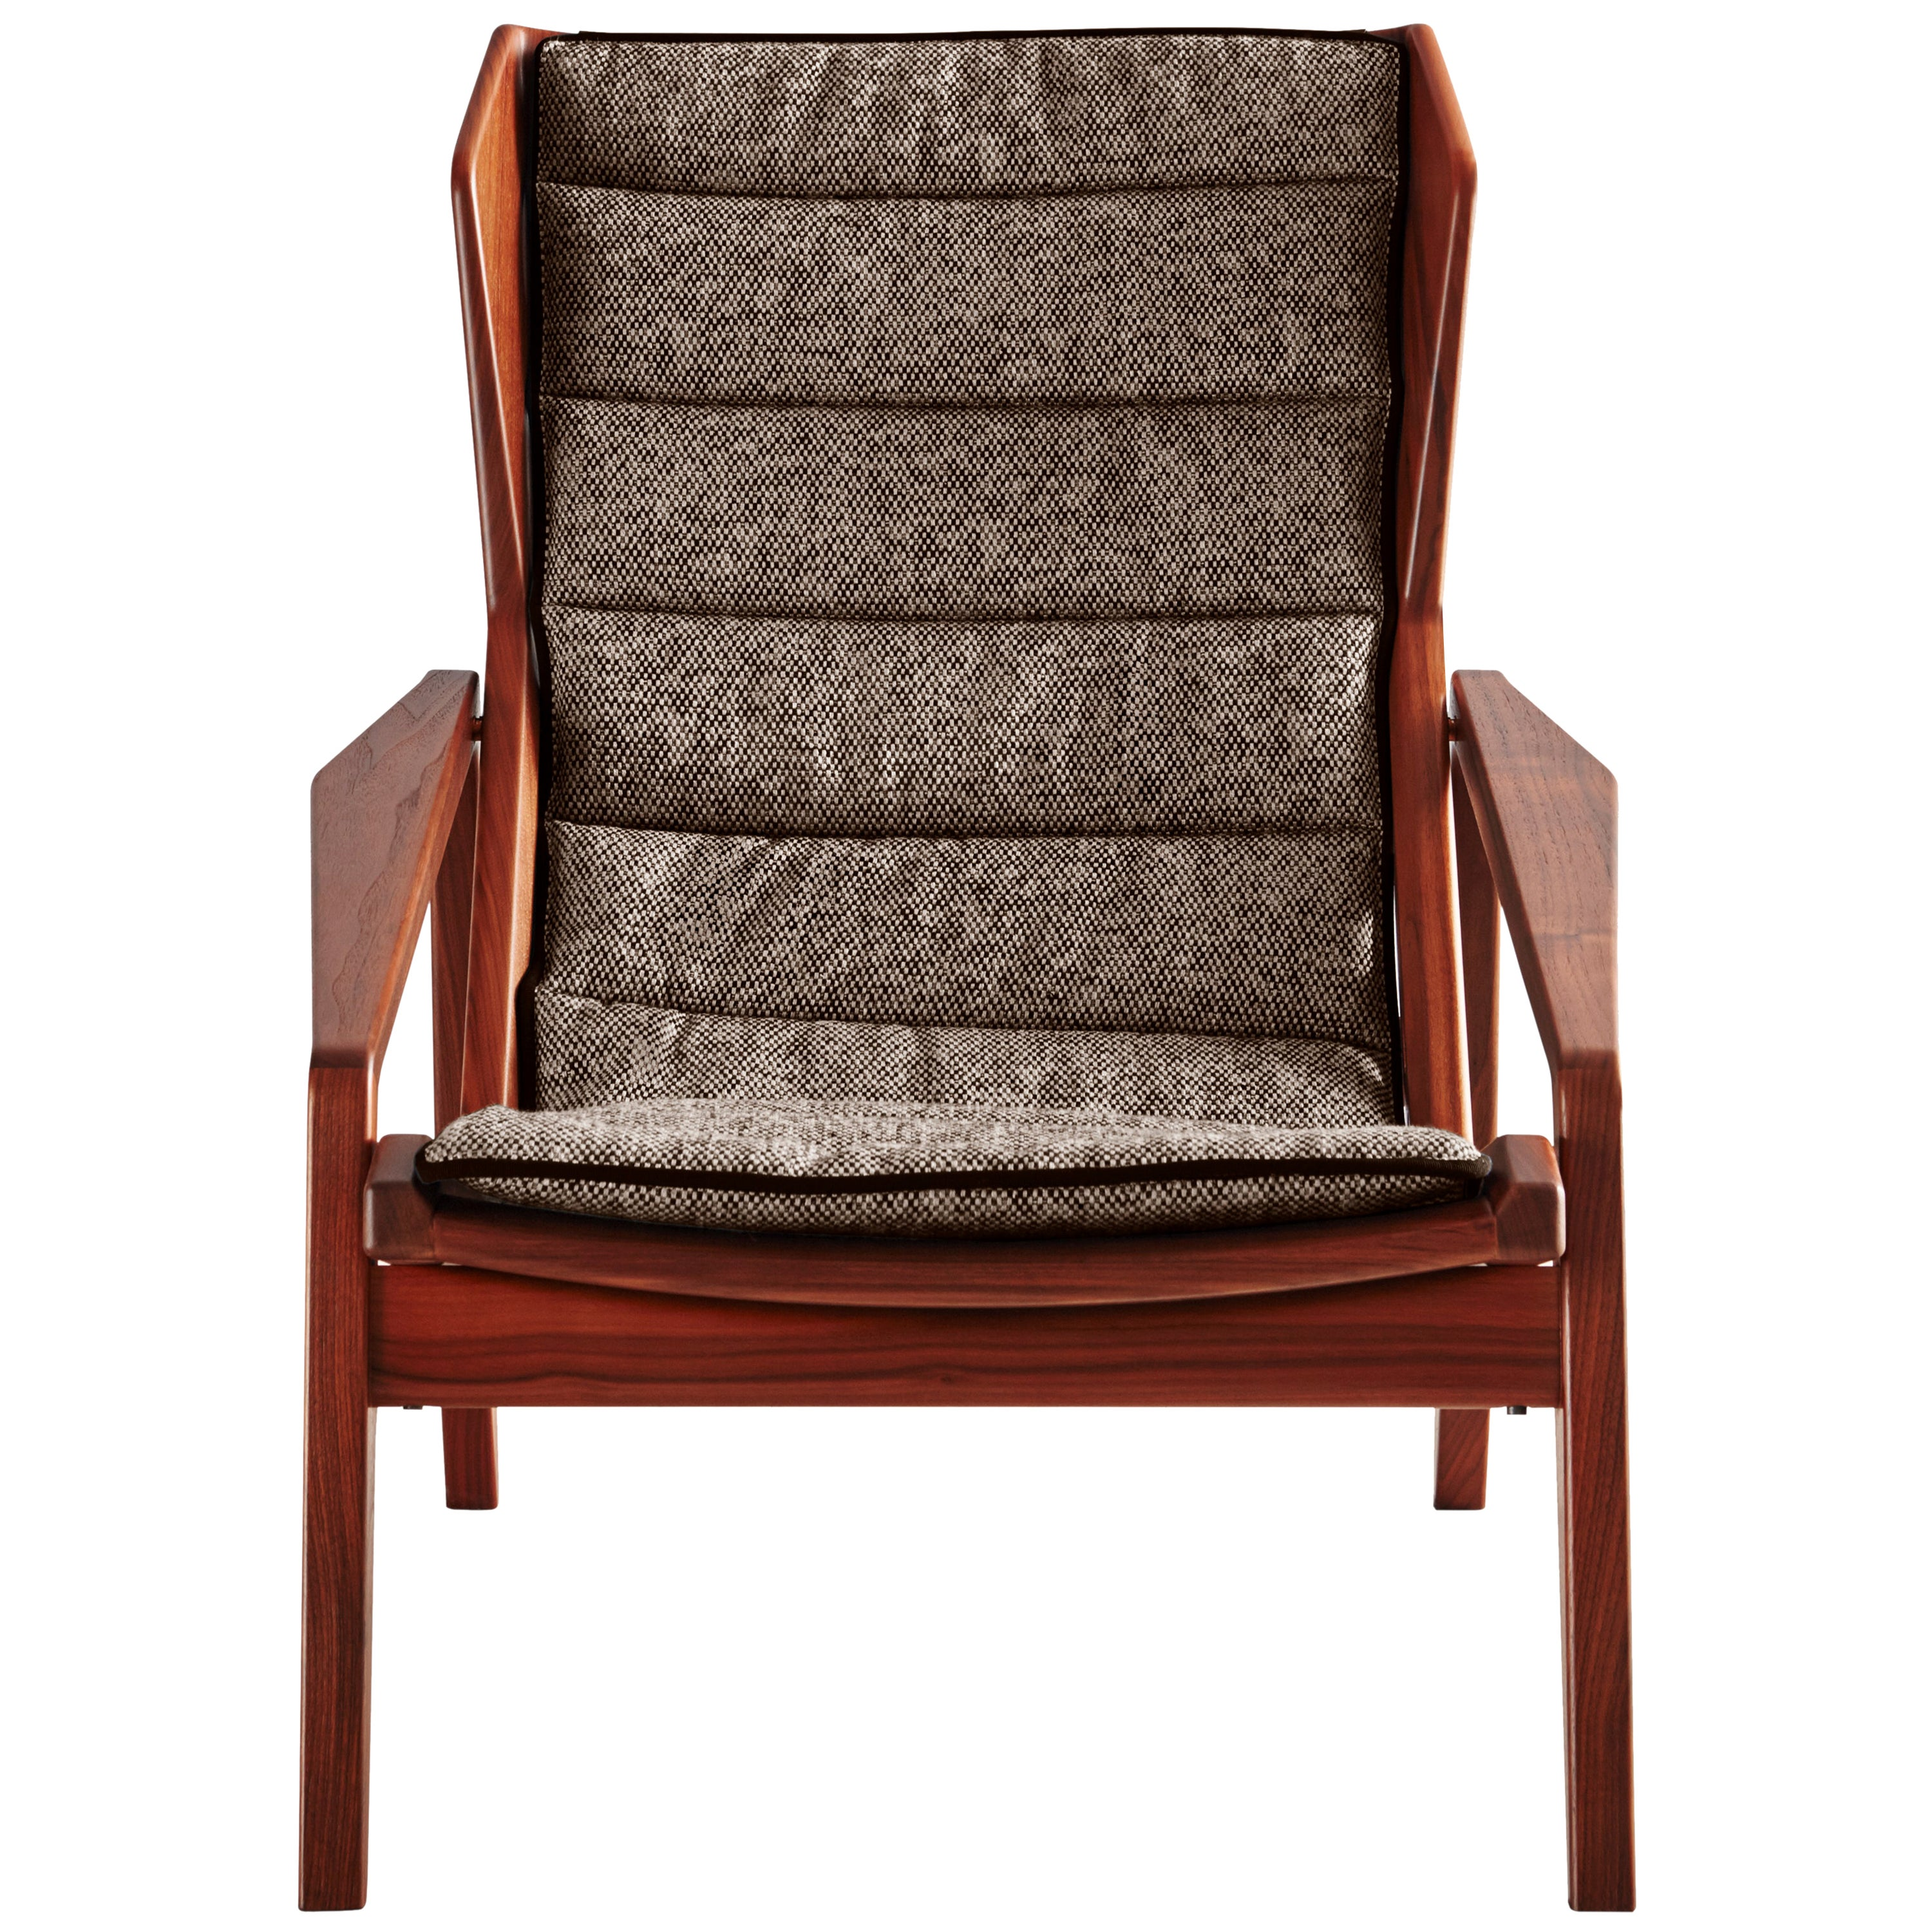 Molteni&C D.156.3 Armchair in American Walnut Structure and Linen by Gio Ponti